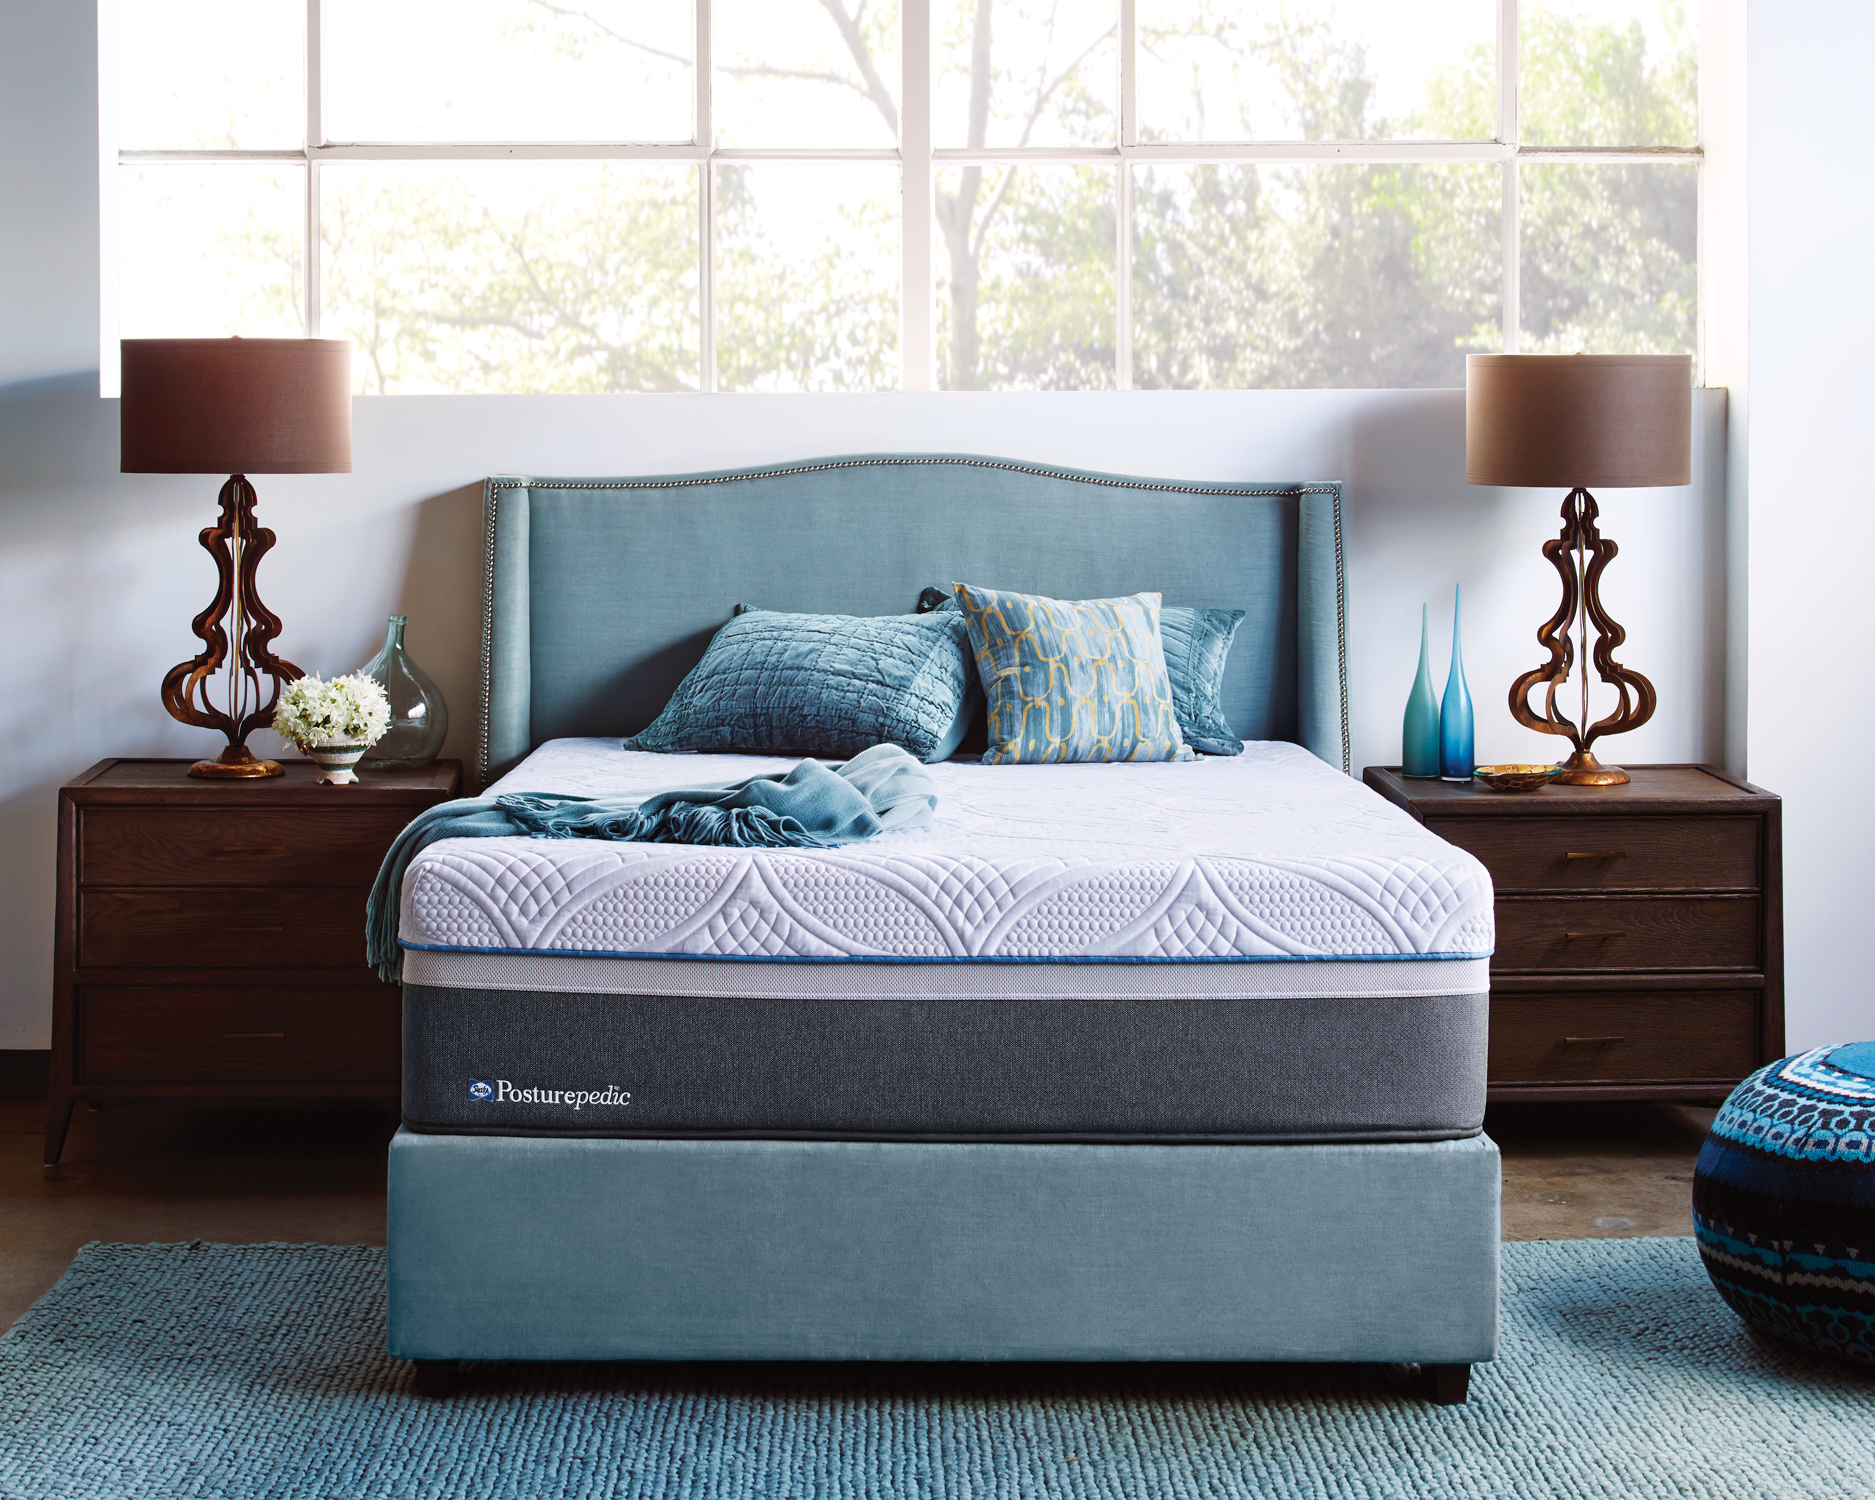 Sealy Posturepedic Hybrid Mattress